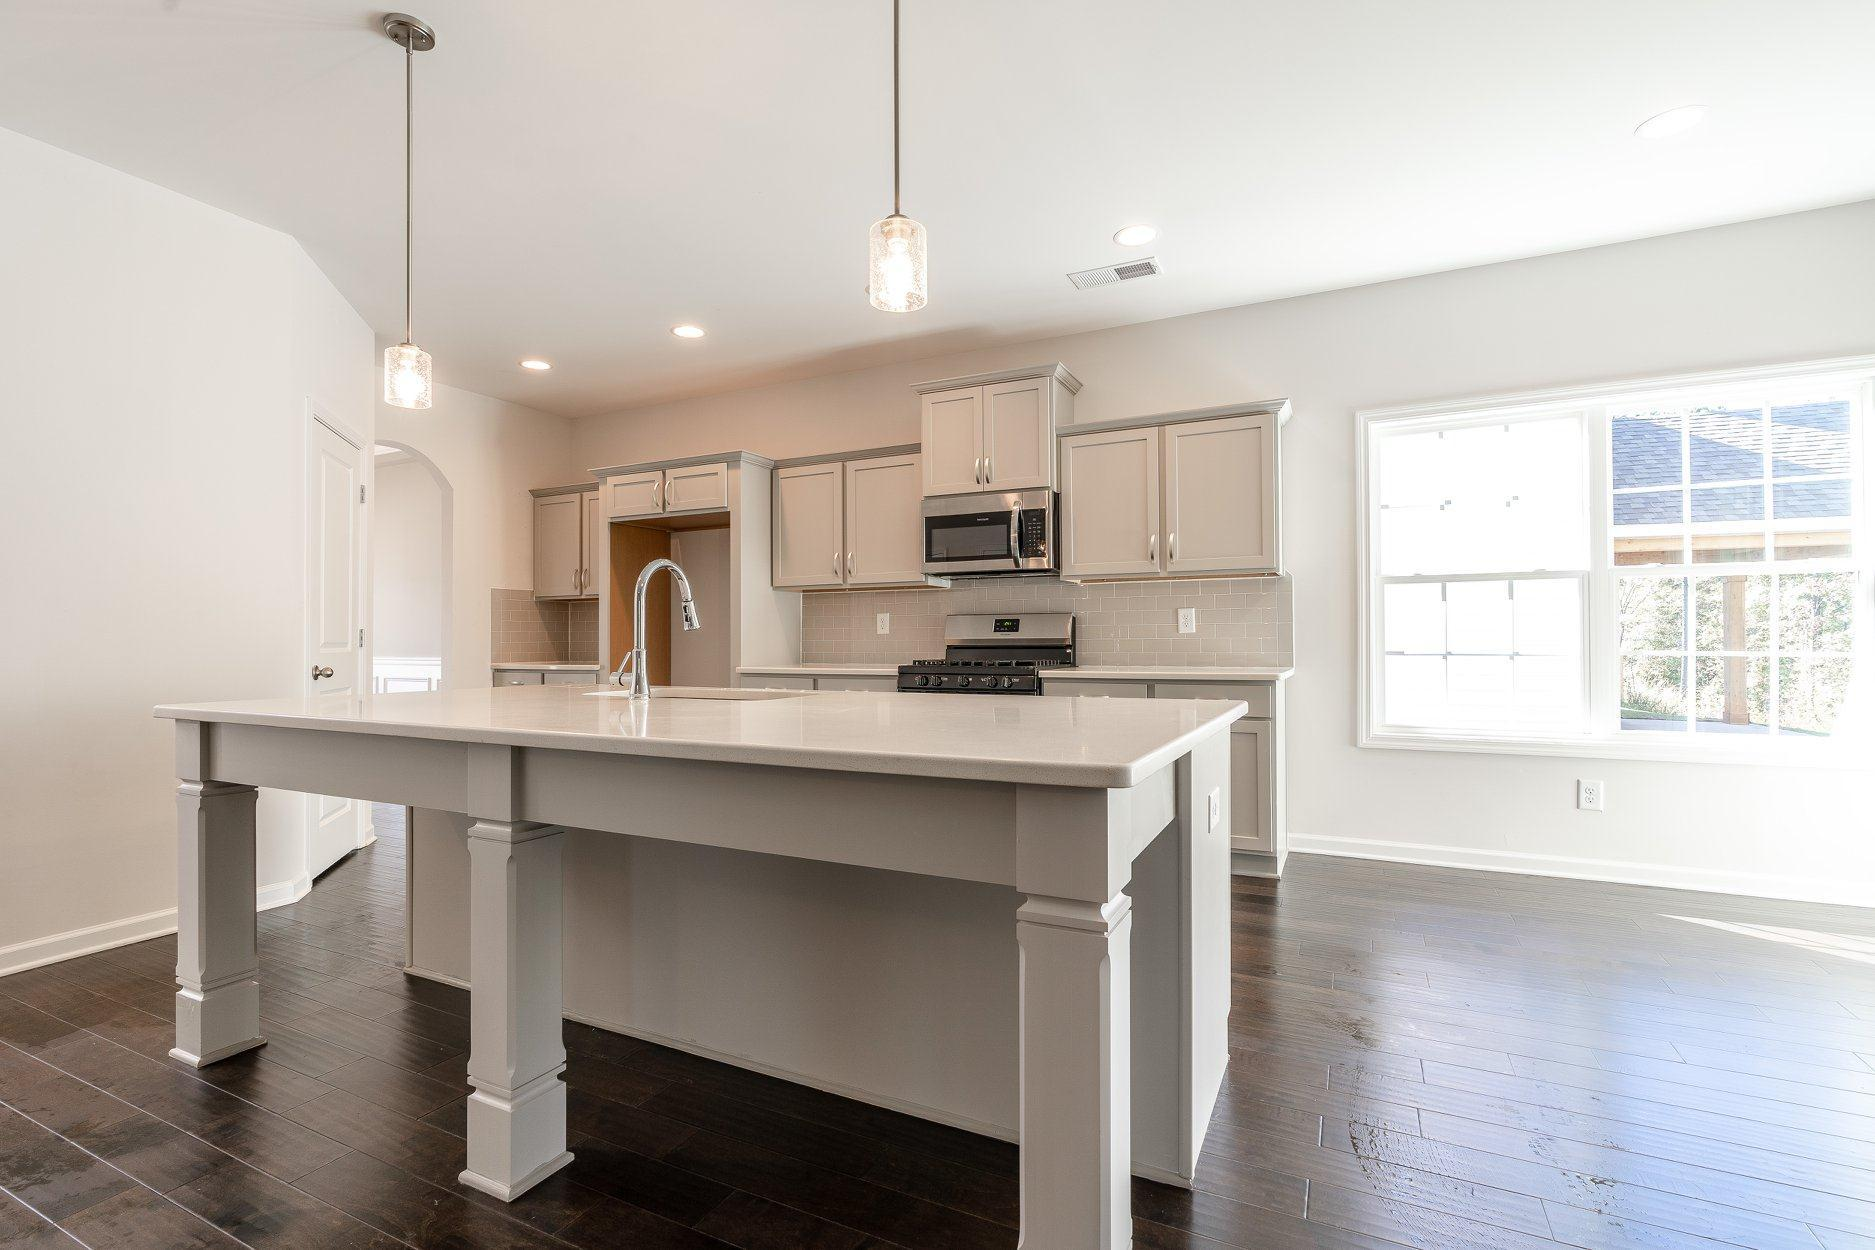 Kitchen featured in the Belmont By Hughston Homes in Macon, GA